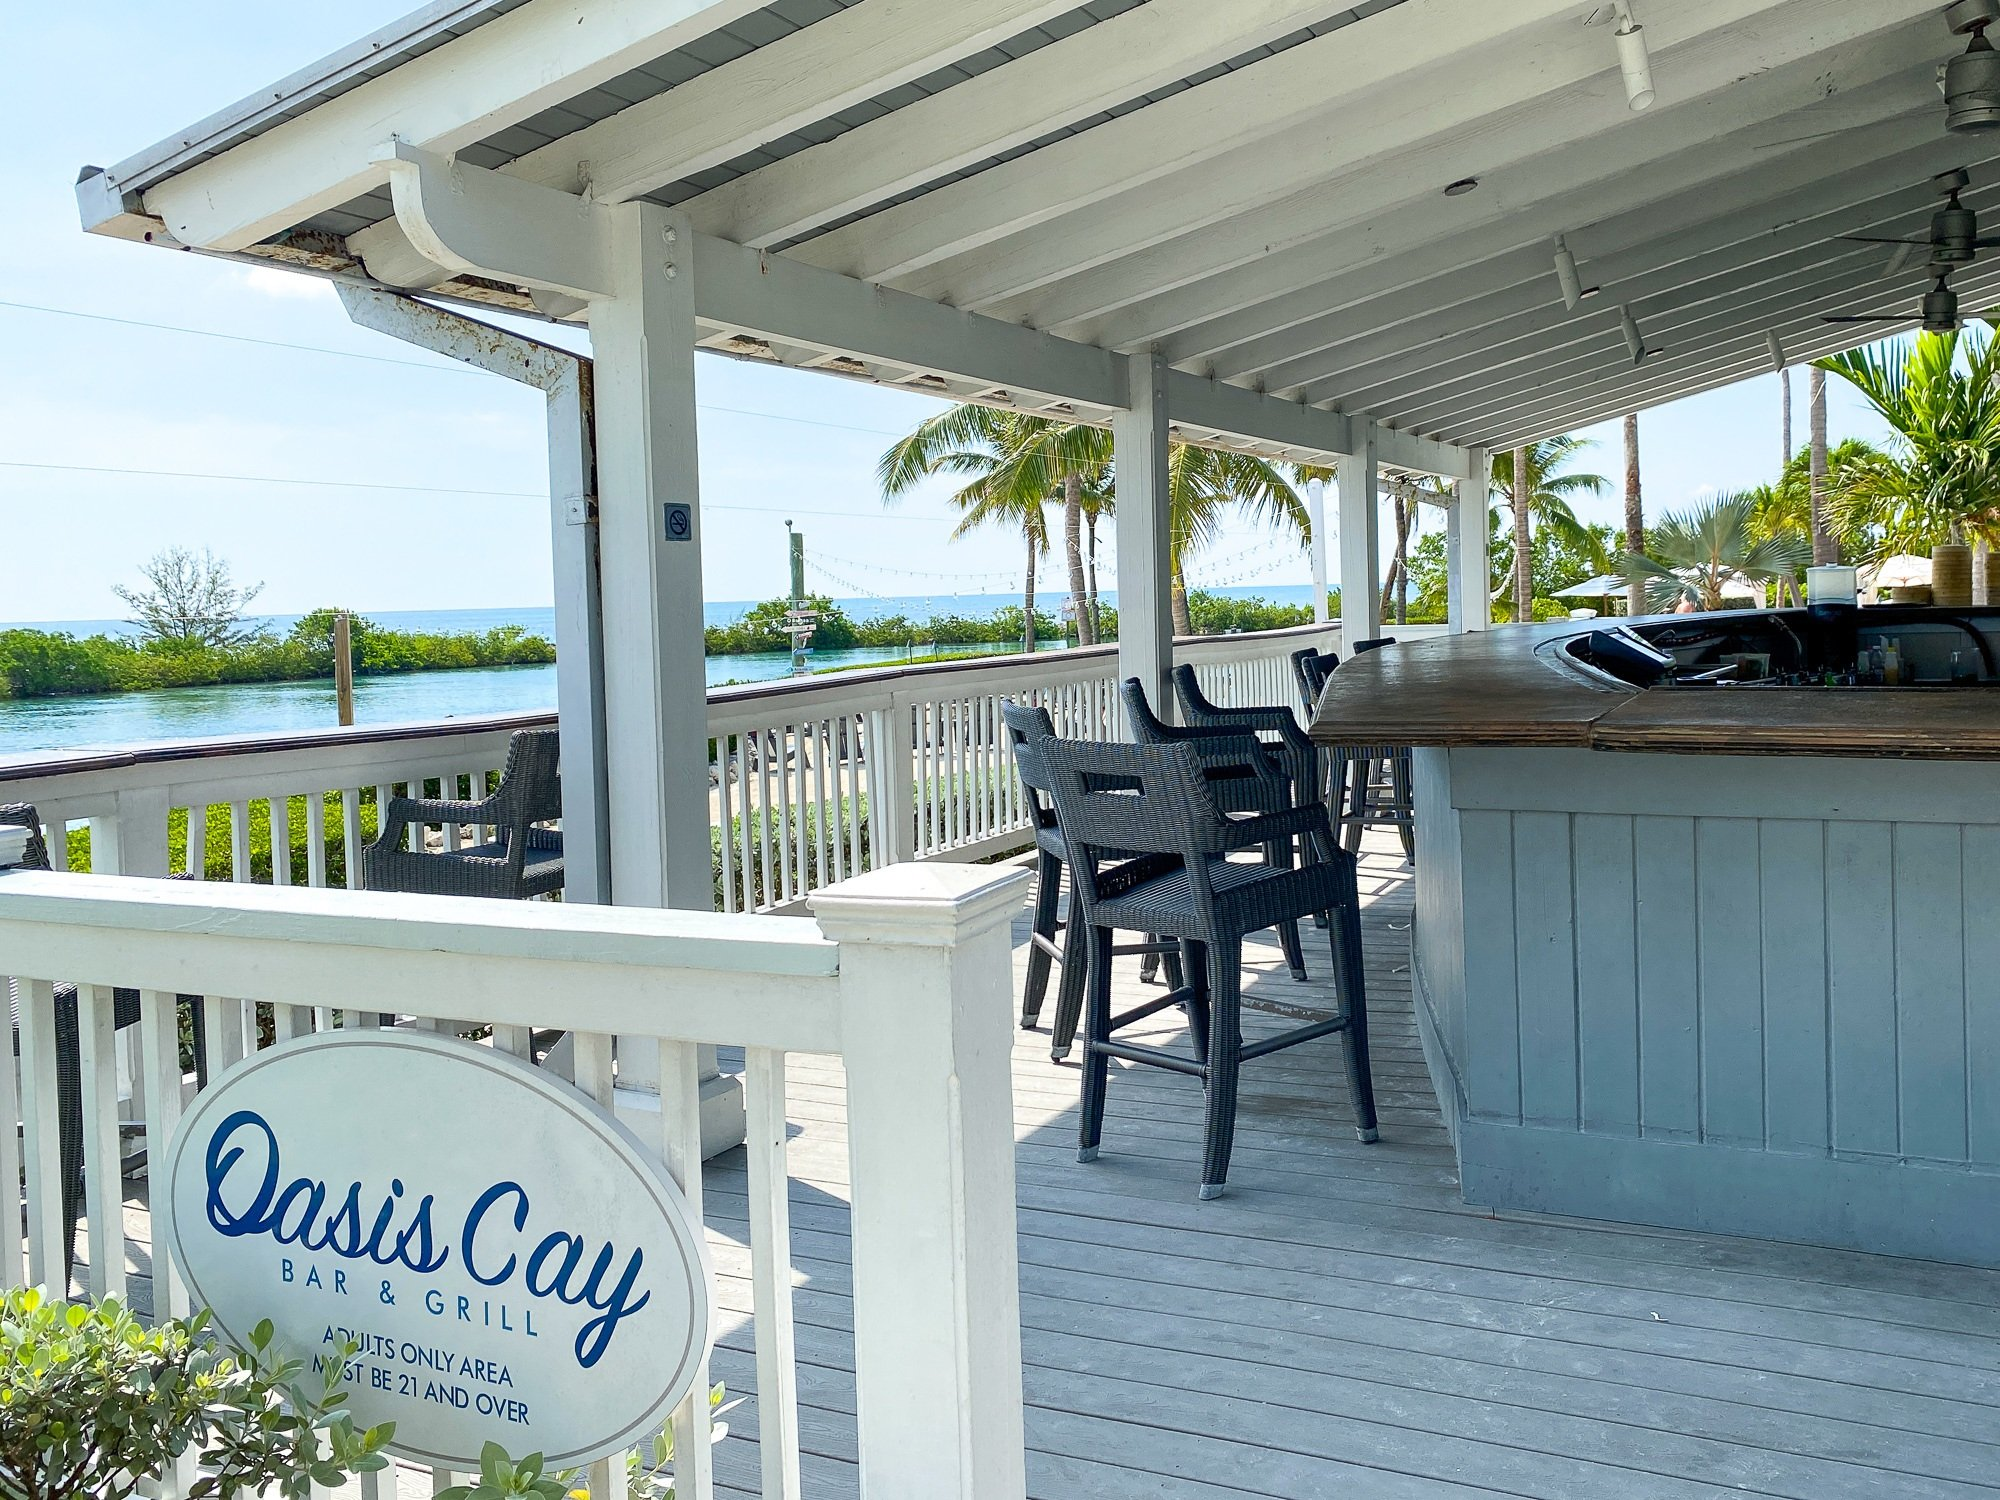 Oasis Cay Bar & Grill for adults only